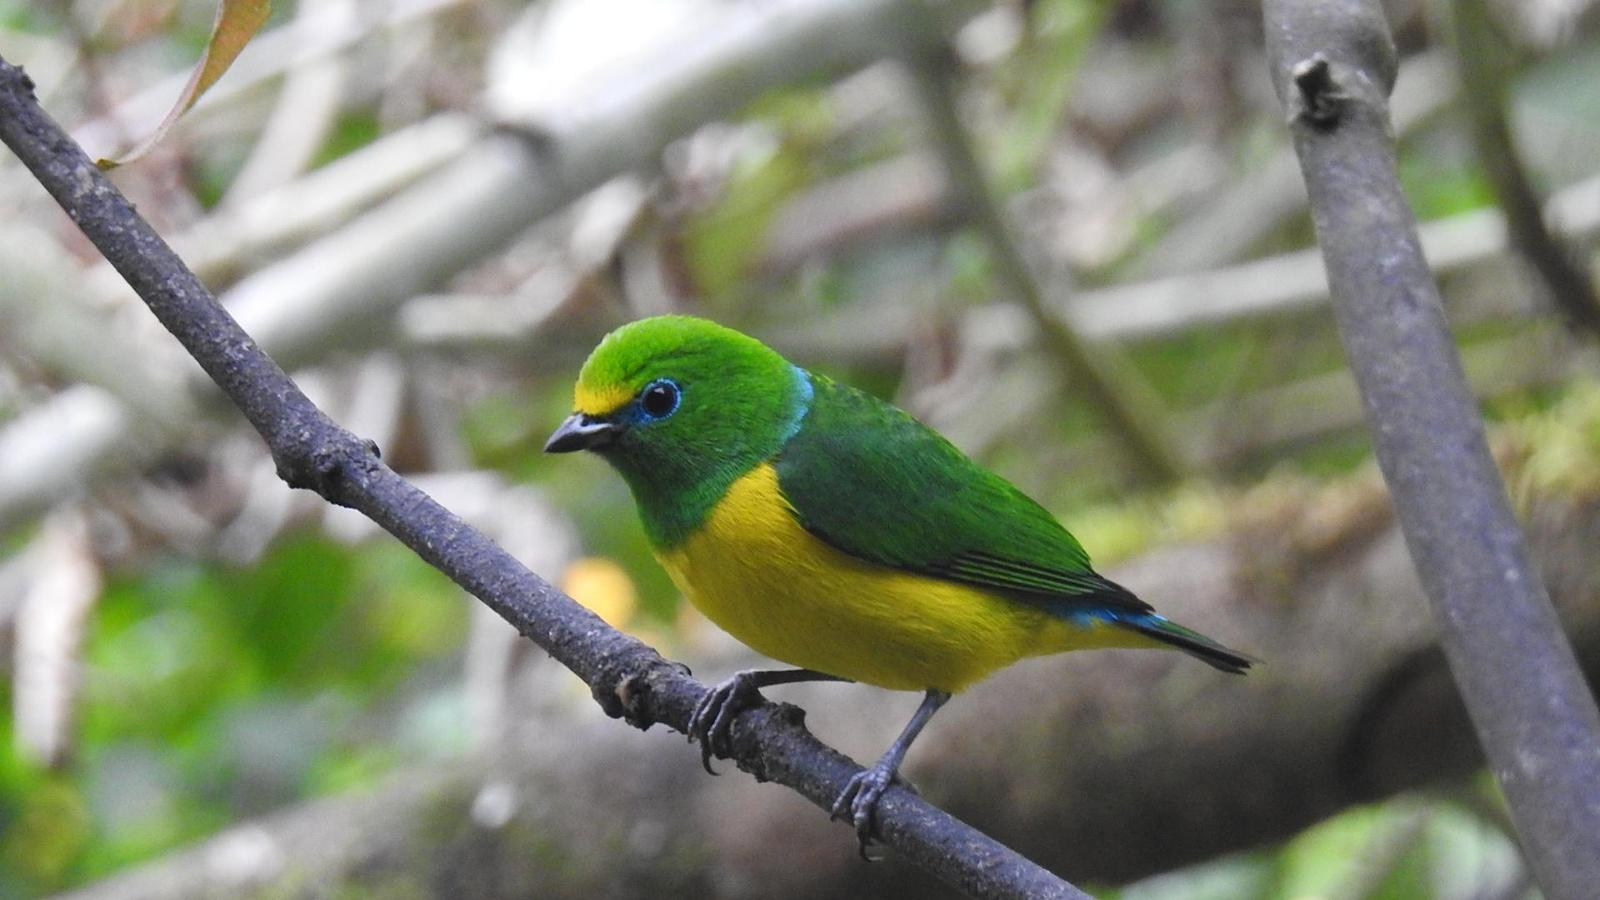 Blue-naped Chlorophonia Photo by Julio Delgado